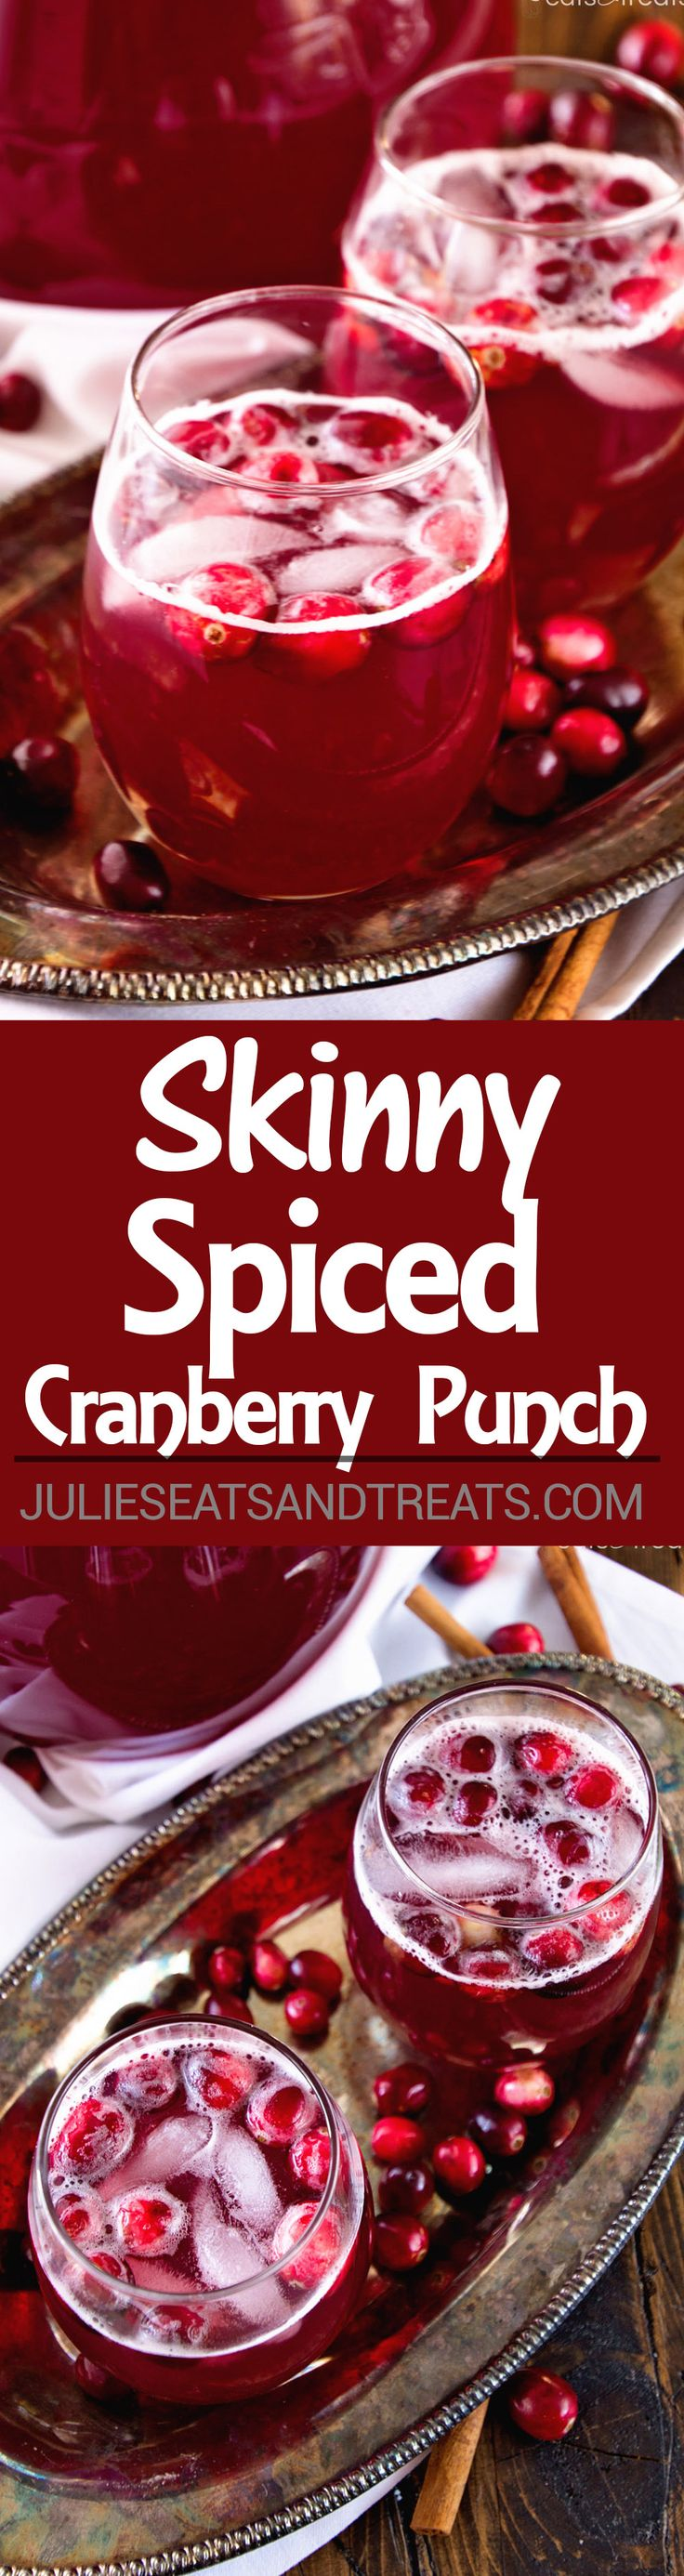 Skinny Spiced Cranberry Punch Recipe ~ A Delicious Light Drink! A Mixture of Cranberry, Pineapple Juice and Ginger Ale and Spiced with Cinnamon. Perfect for Holiday Parties! on MyRecipeMagic.com